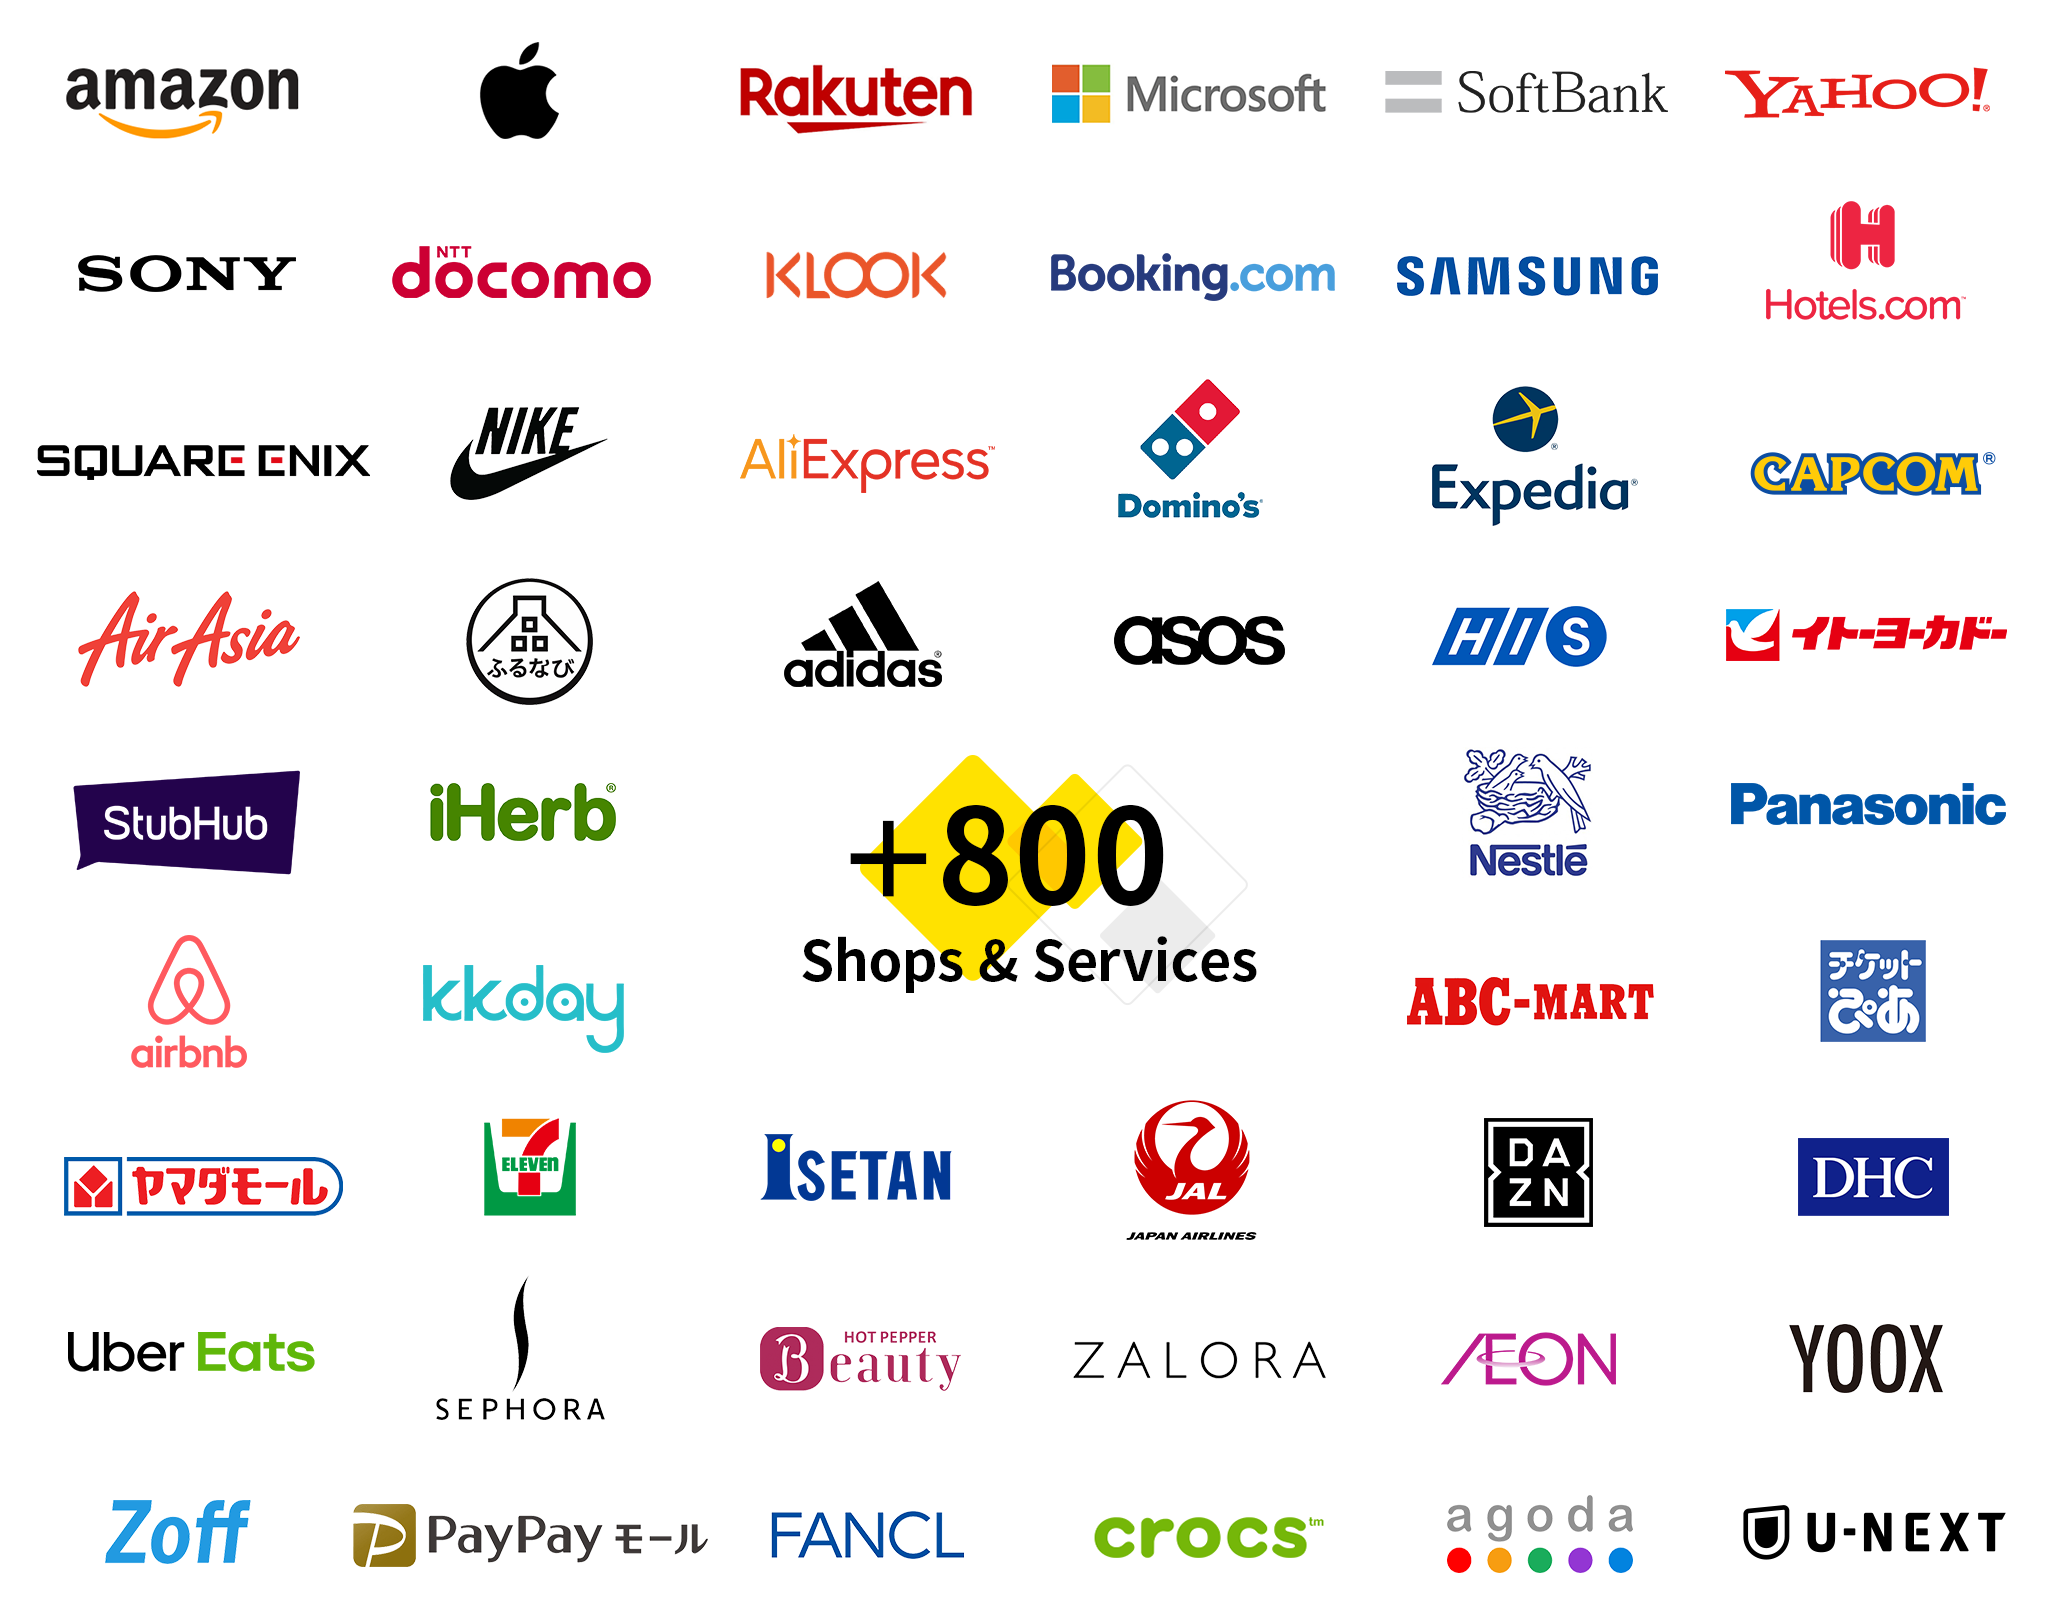 +800 shops and services